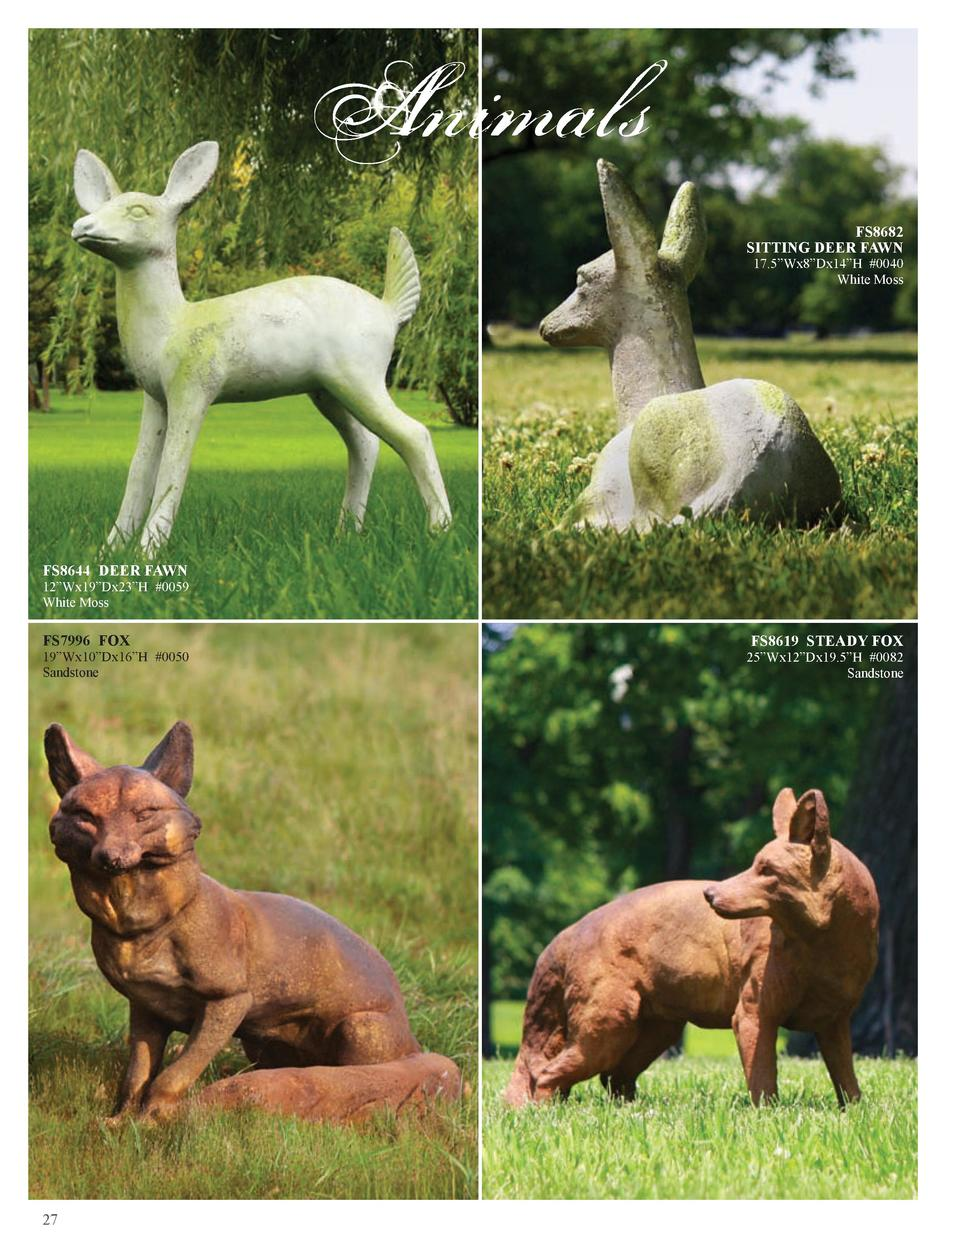 Animals FS8682 SITTING DEER FAWN  17.5   Wx8   Dx14   H  0040 White Moss  FS8644 DEER FAWN  12   Wx19   Dx23   H  0059 Whi...